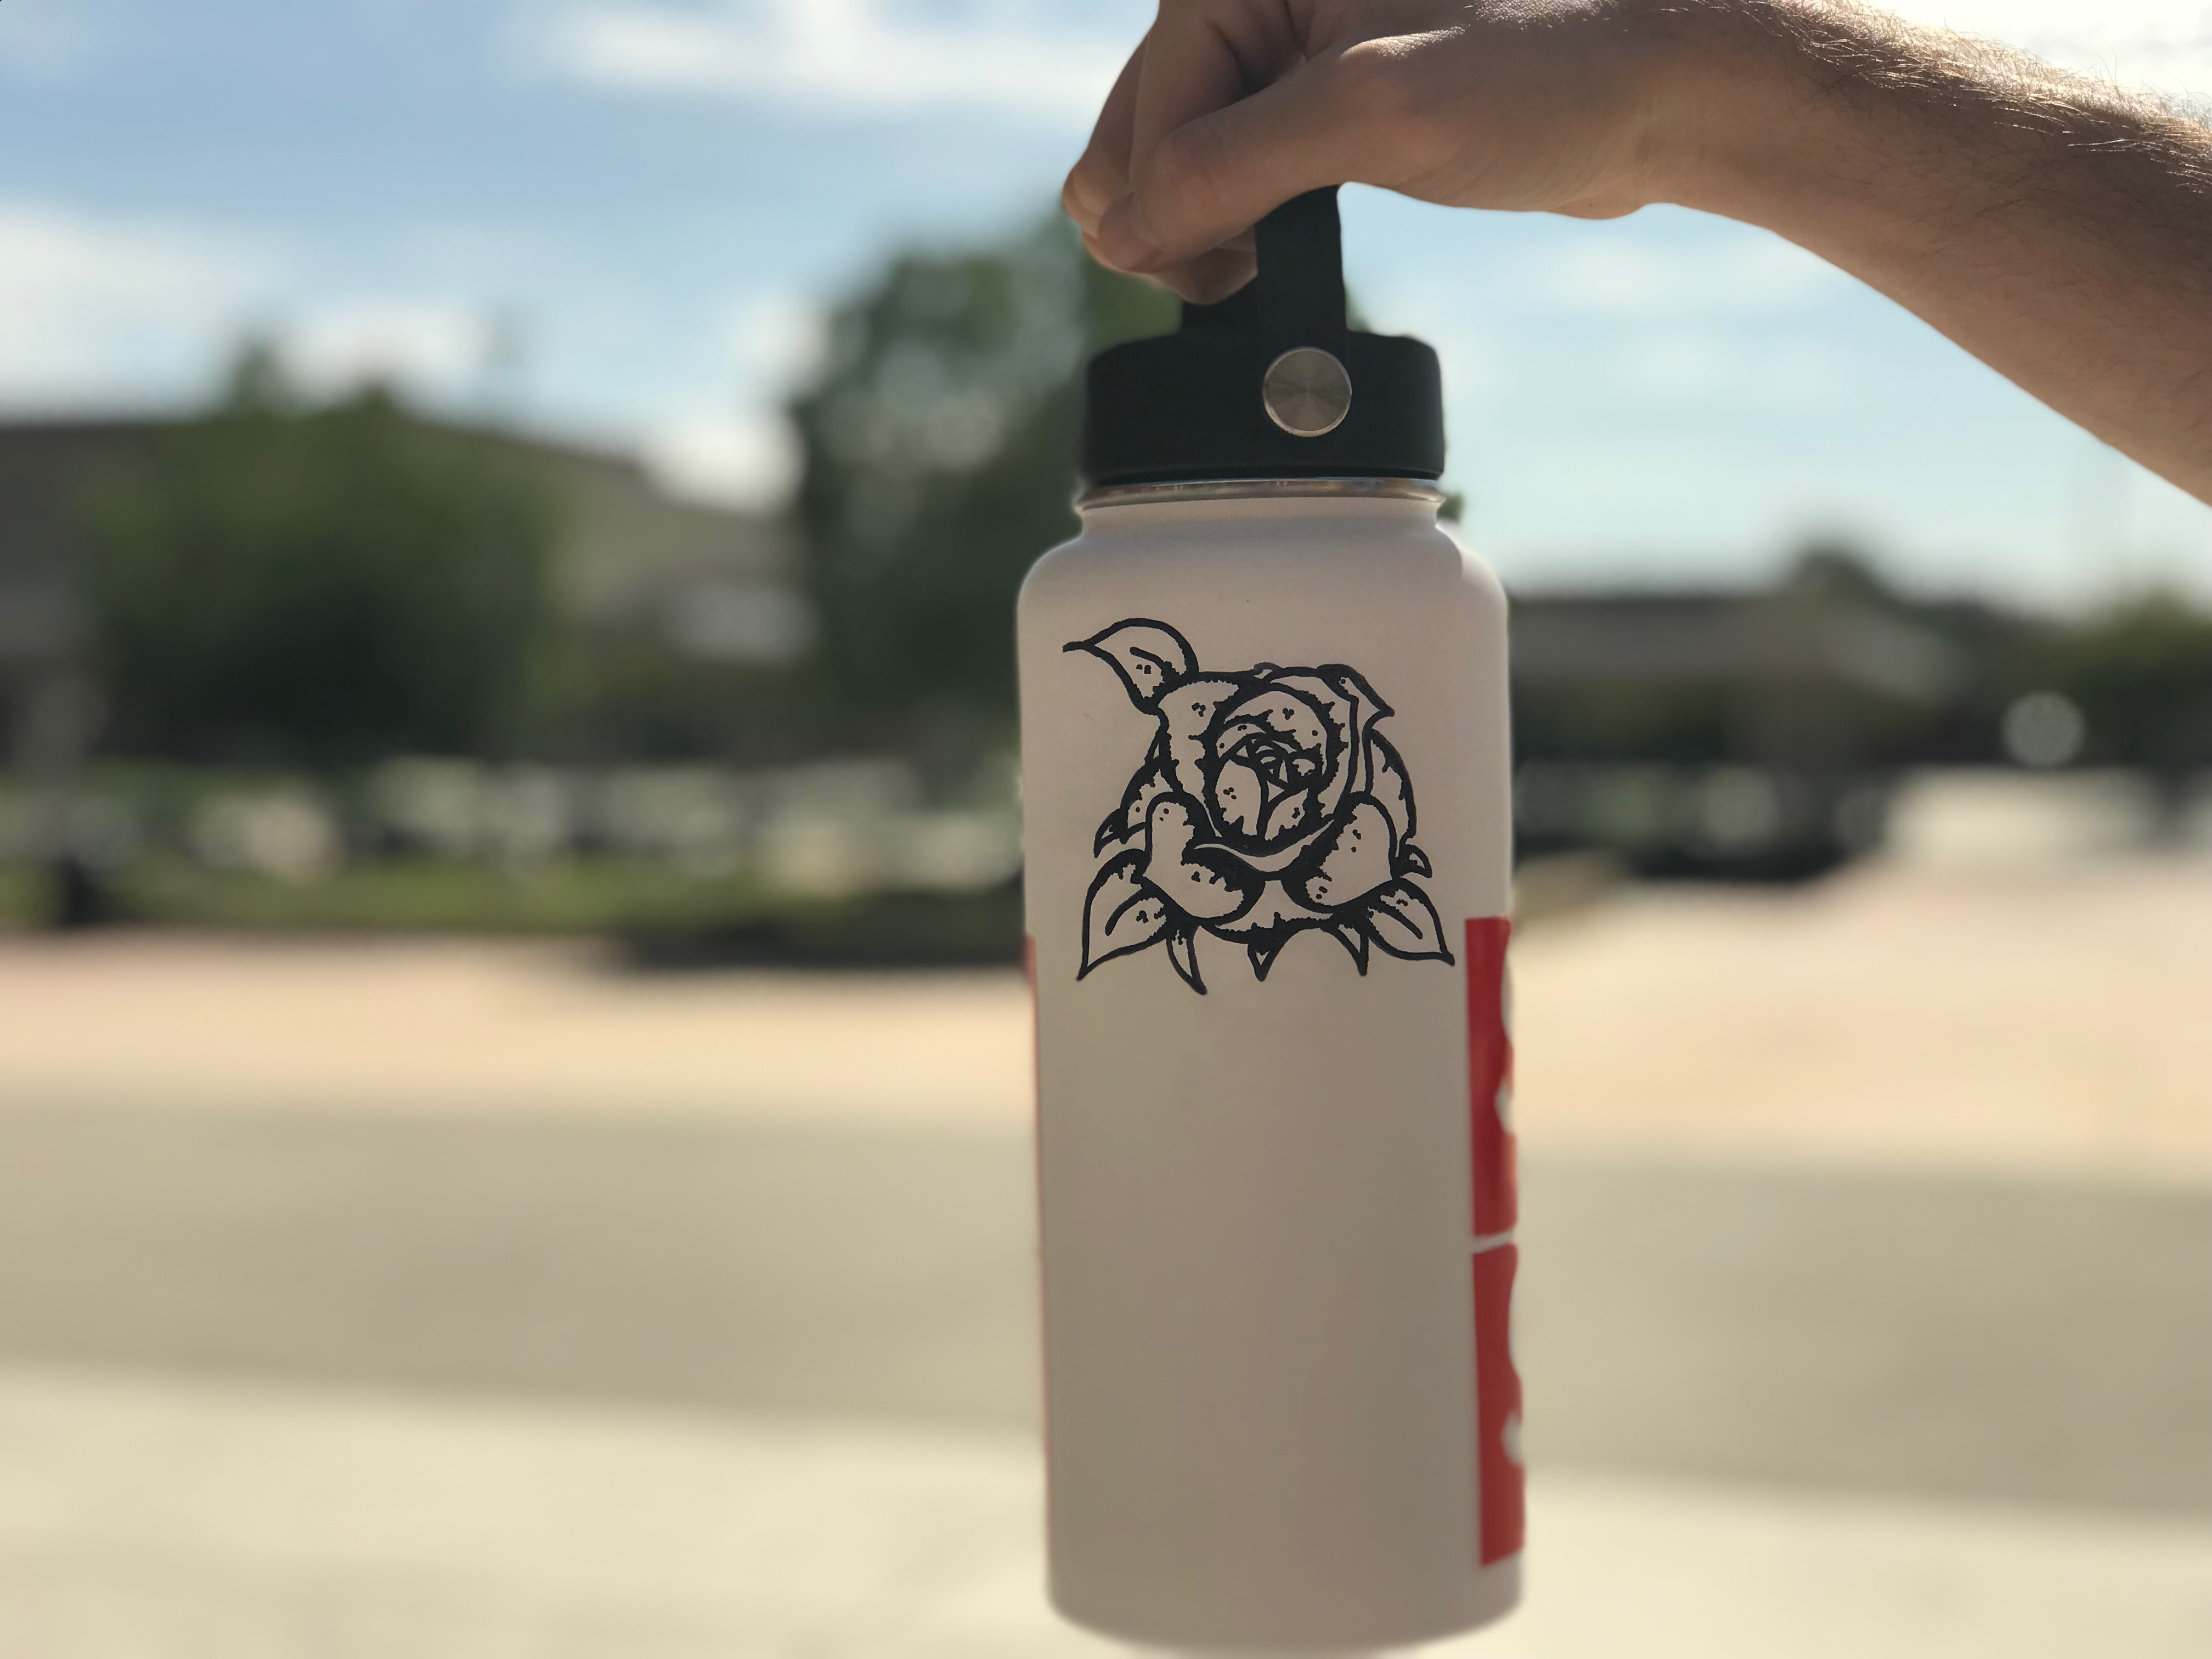 Hydro Flask Fever: CV students carry their water in style – E T H I C